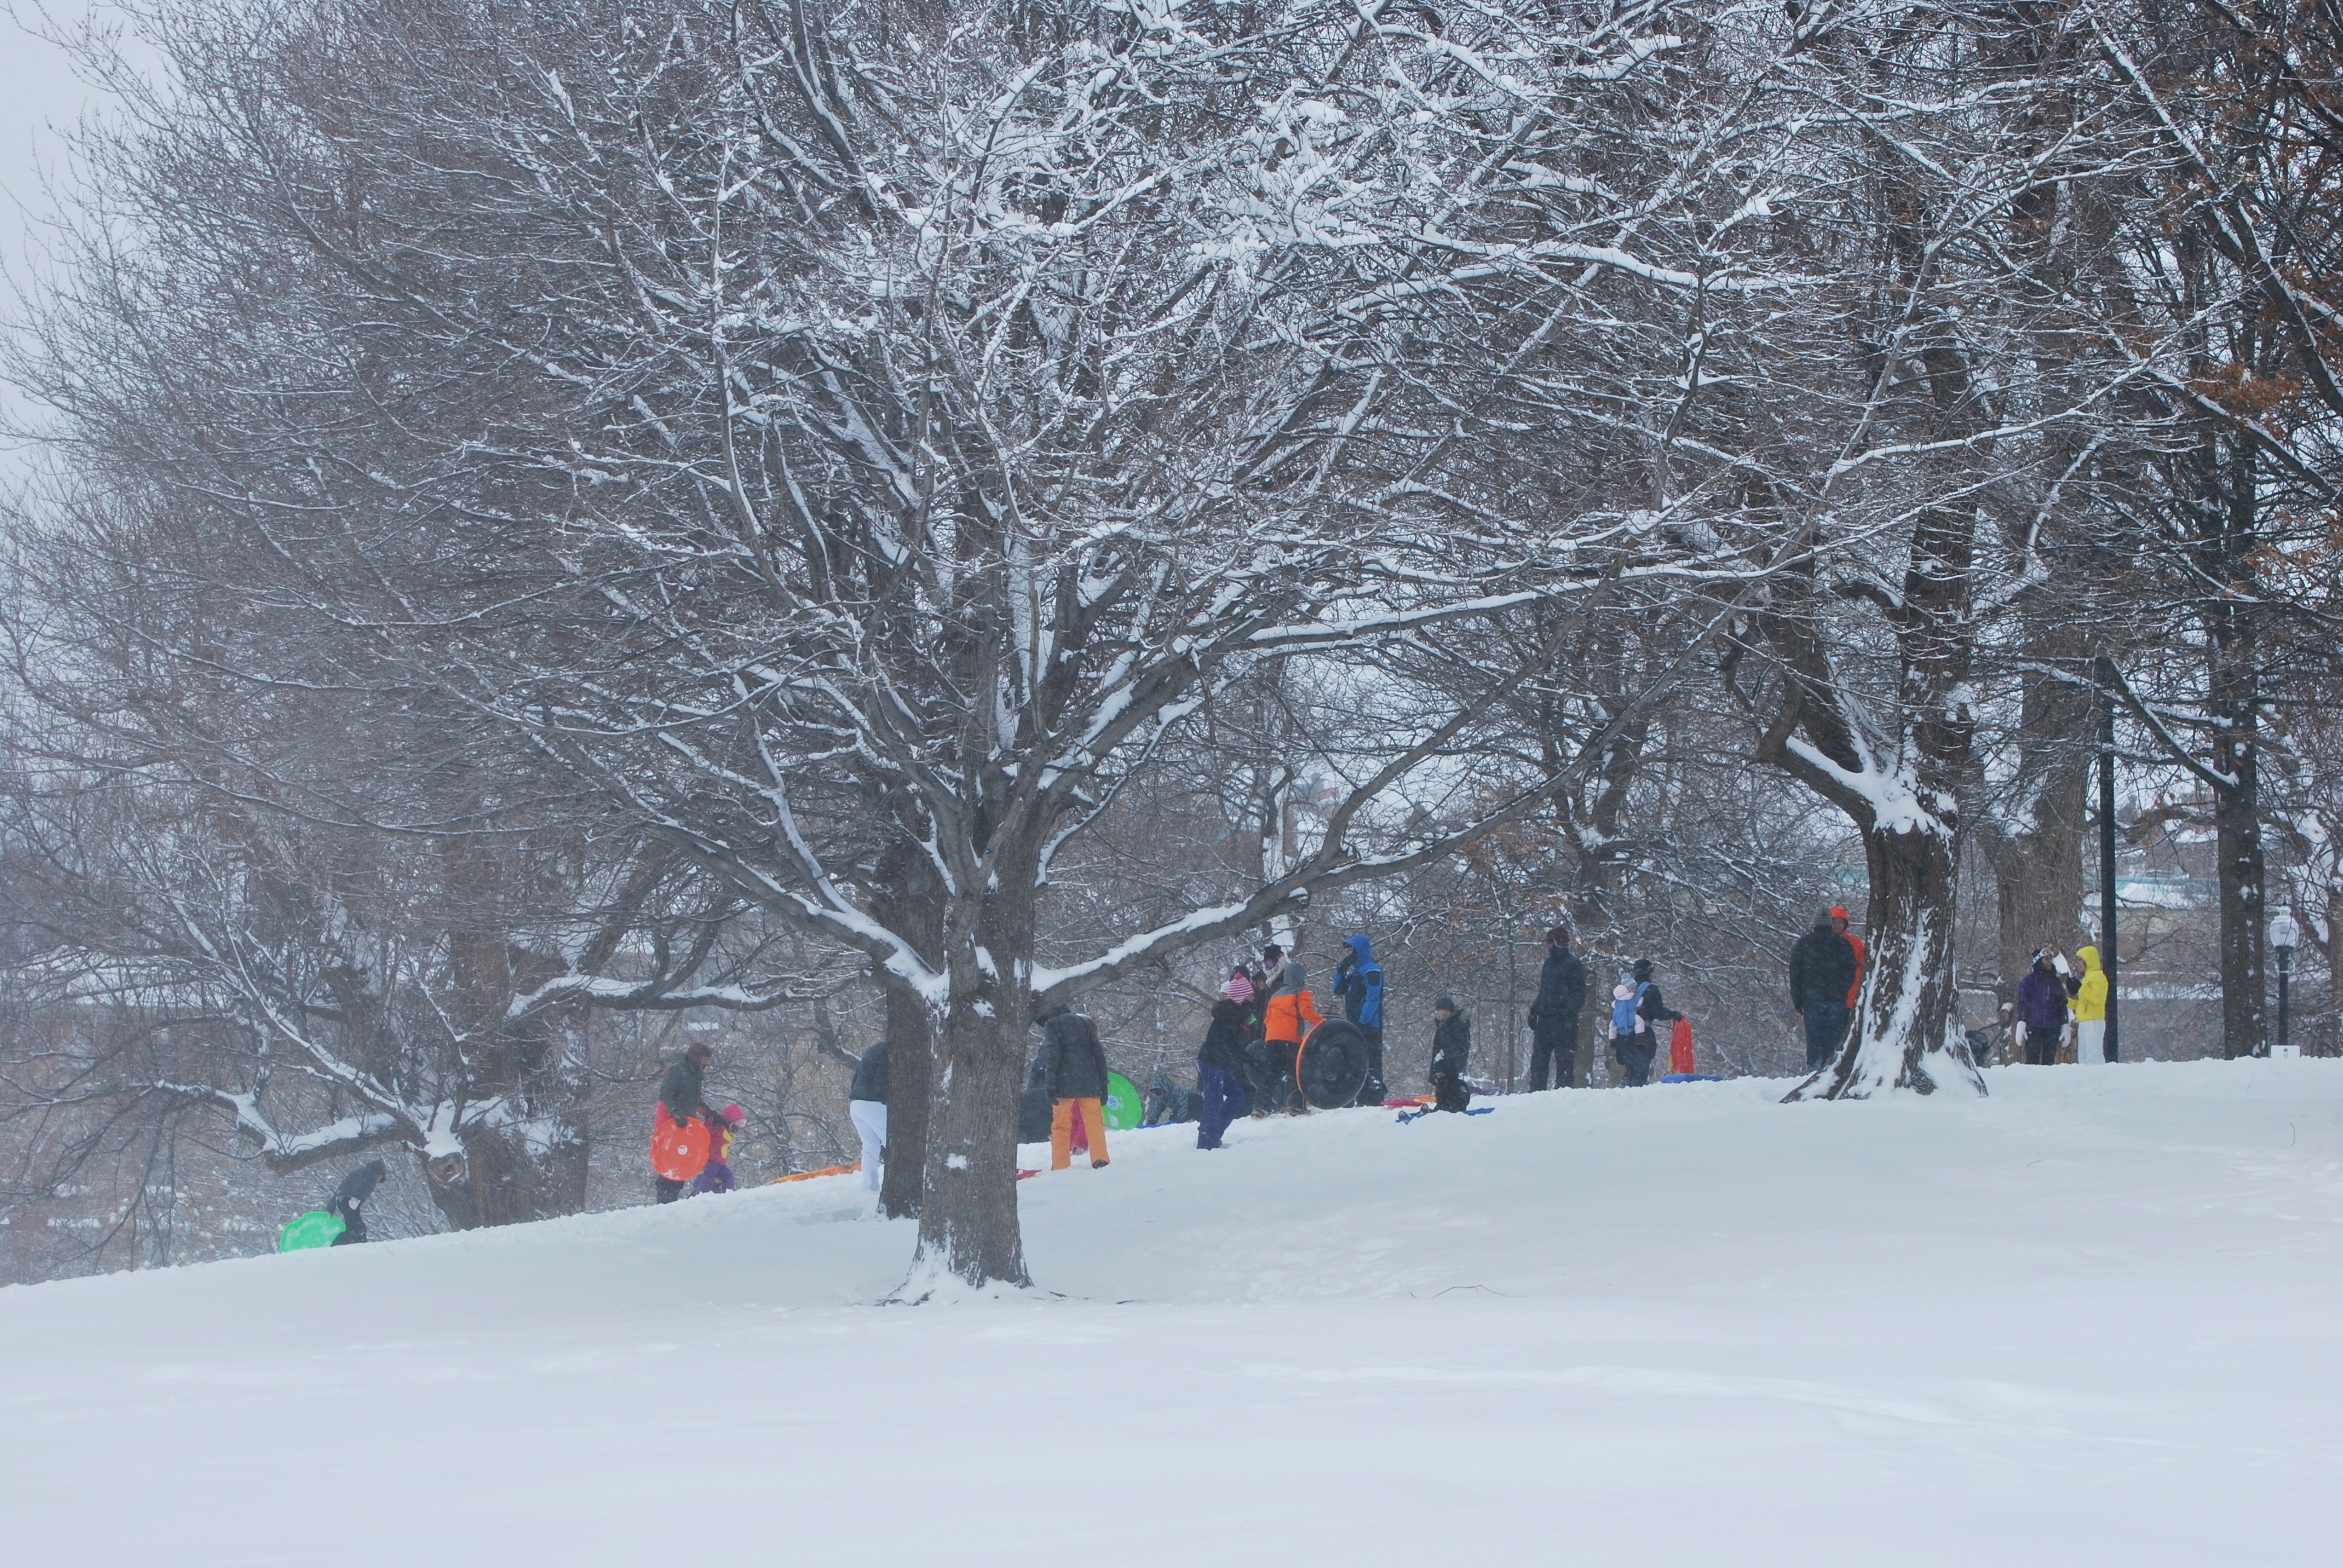 Kids sledding in Boston Common